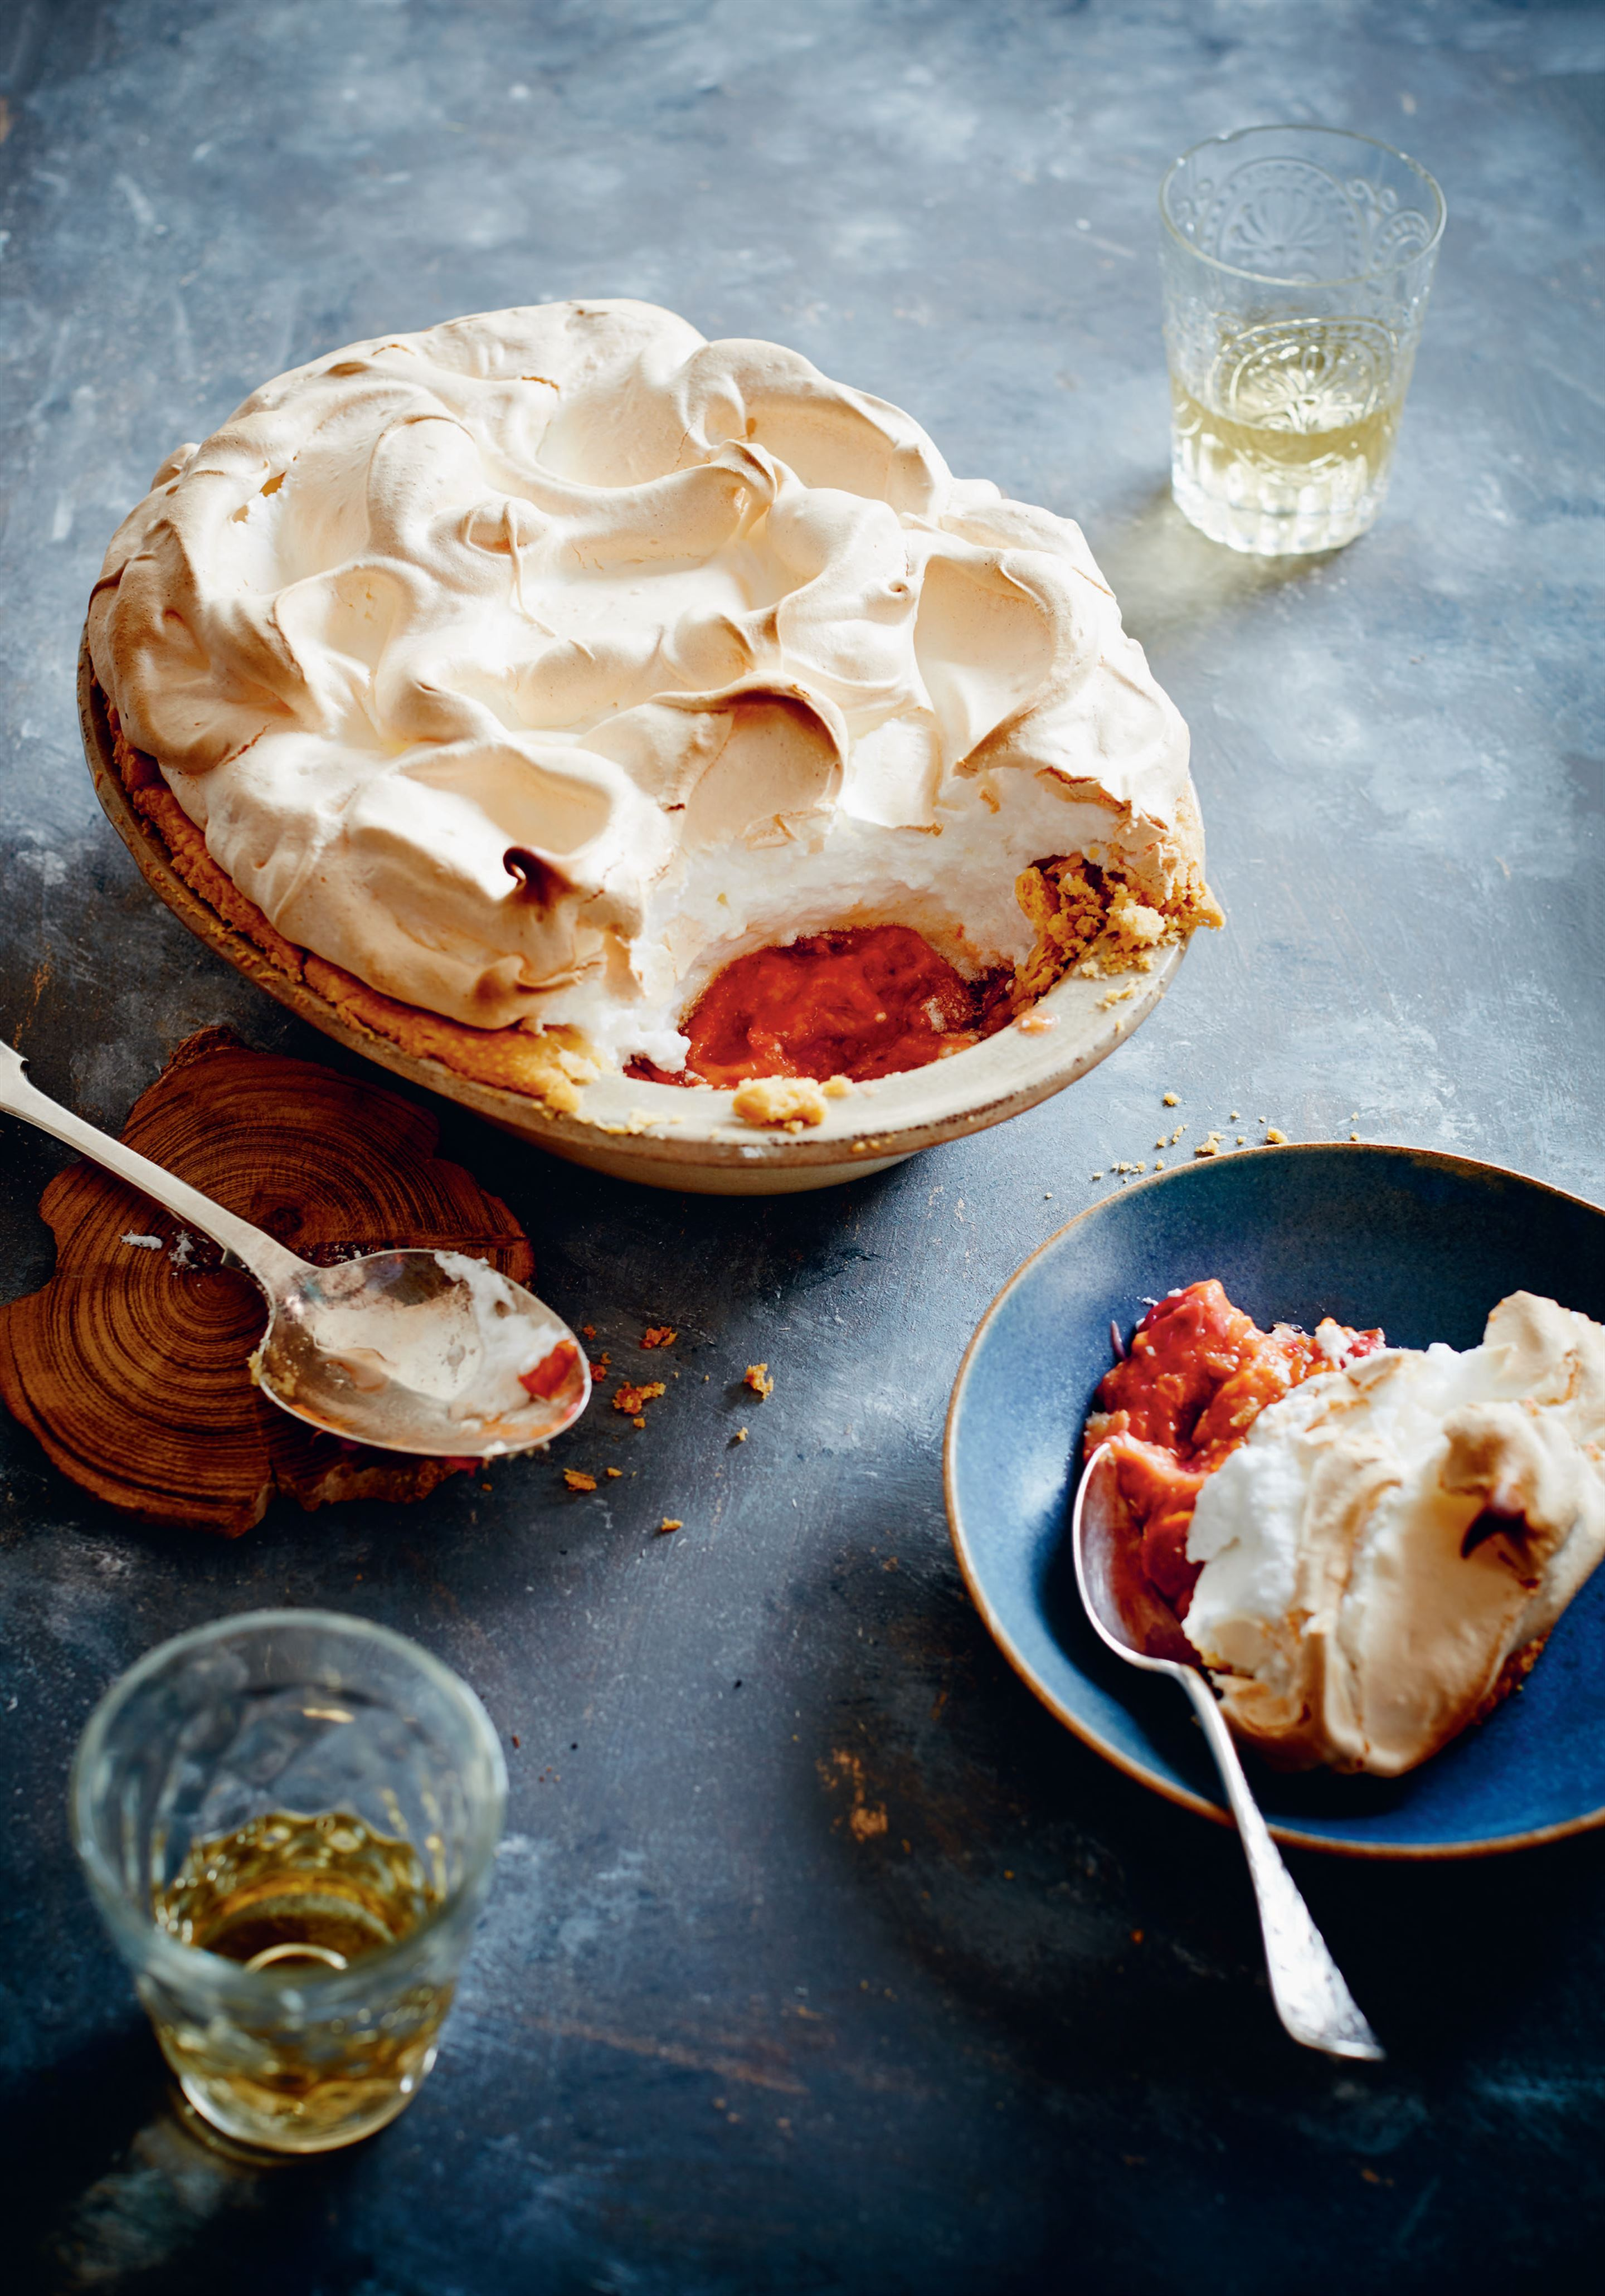 Blood orange and rhubarb meringue pie